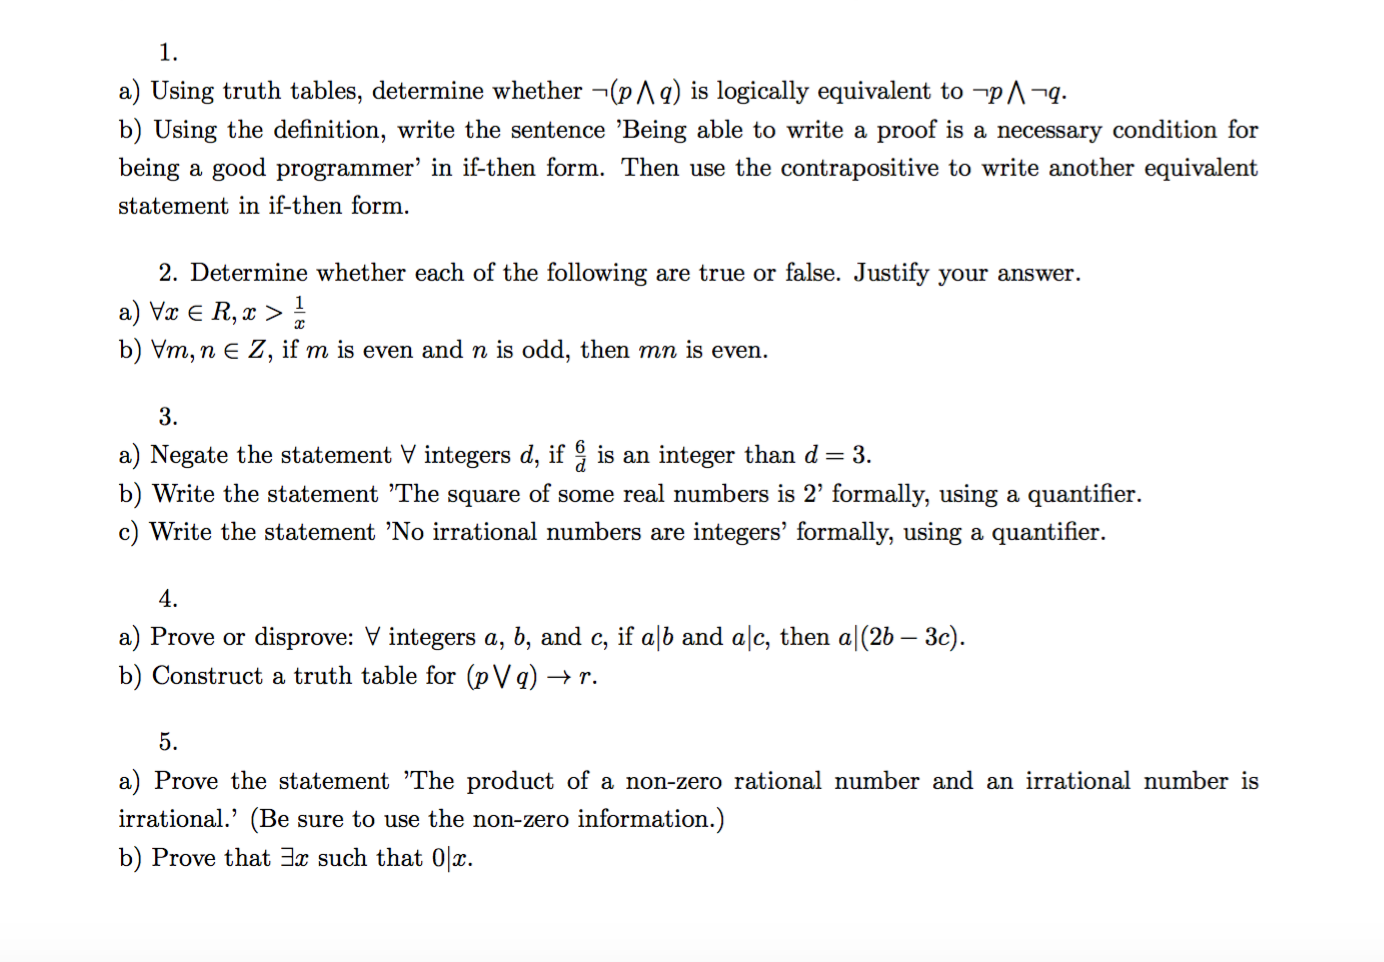 solved: using truth tables, determine whether (p n q) is l